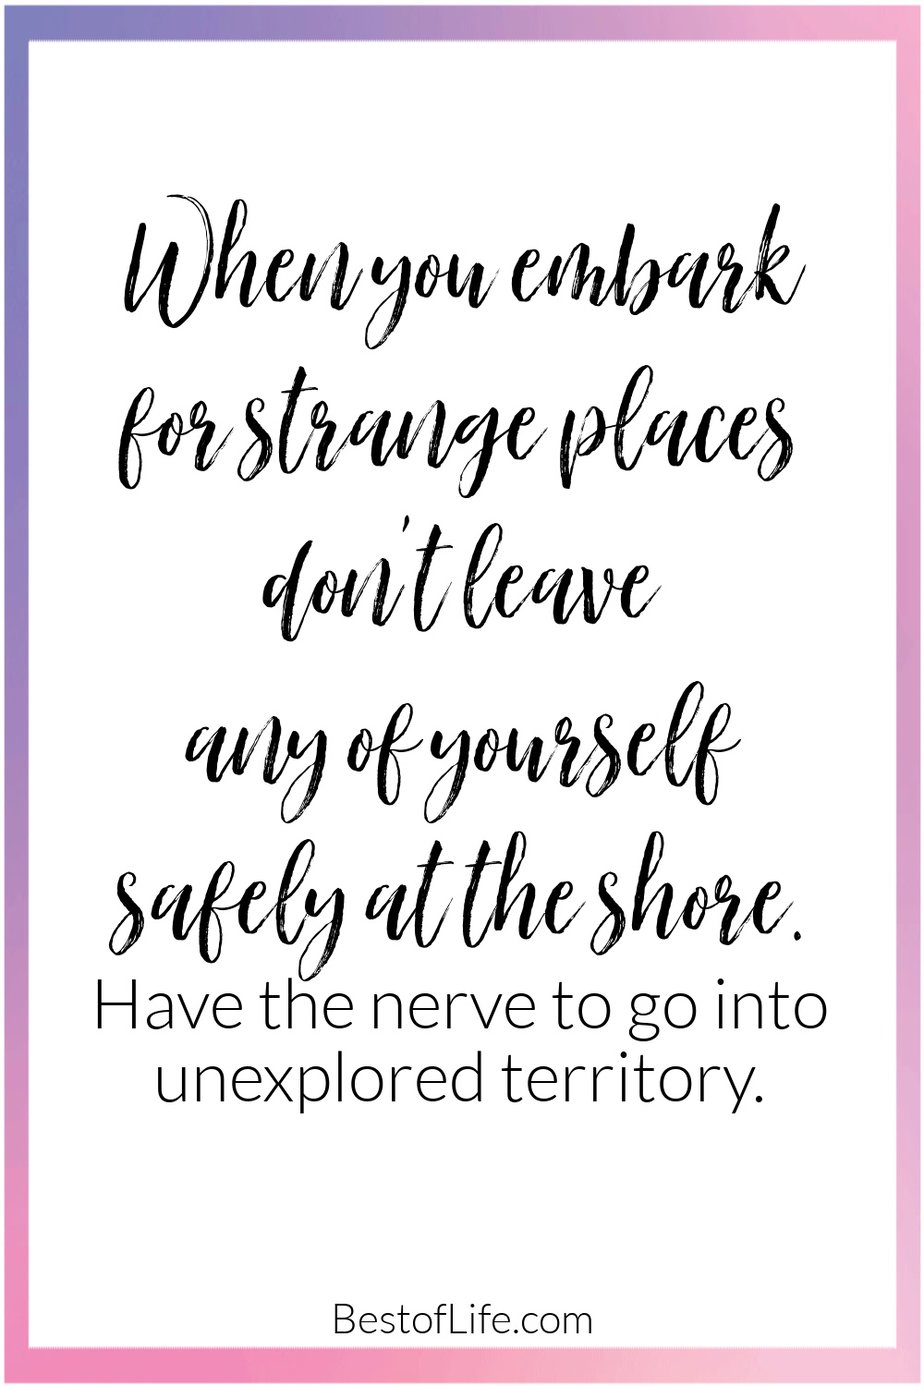 Graduation Quotes from Parents When You Embark for Strange Places Don't Leave any of Yourself Safely at the Shore. Have the Nerve to go into Unexplored Territory